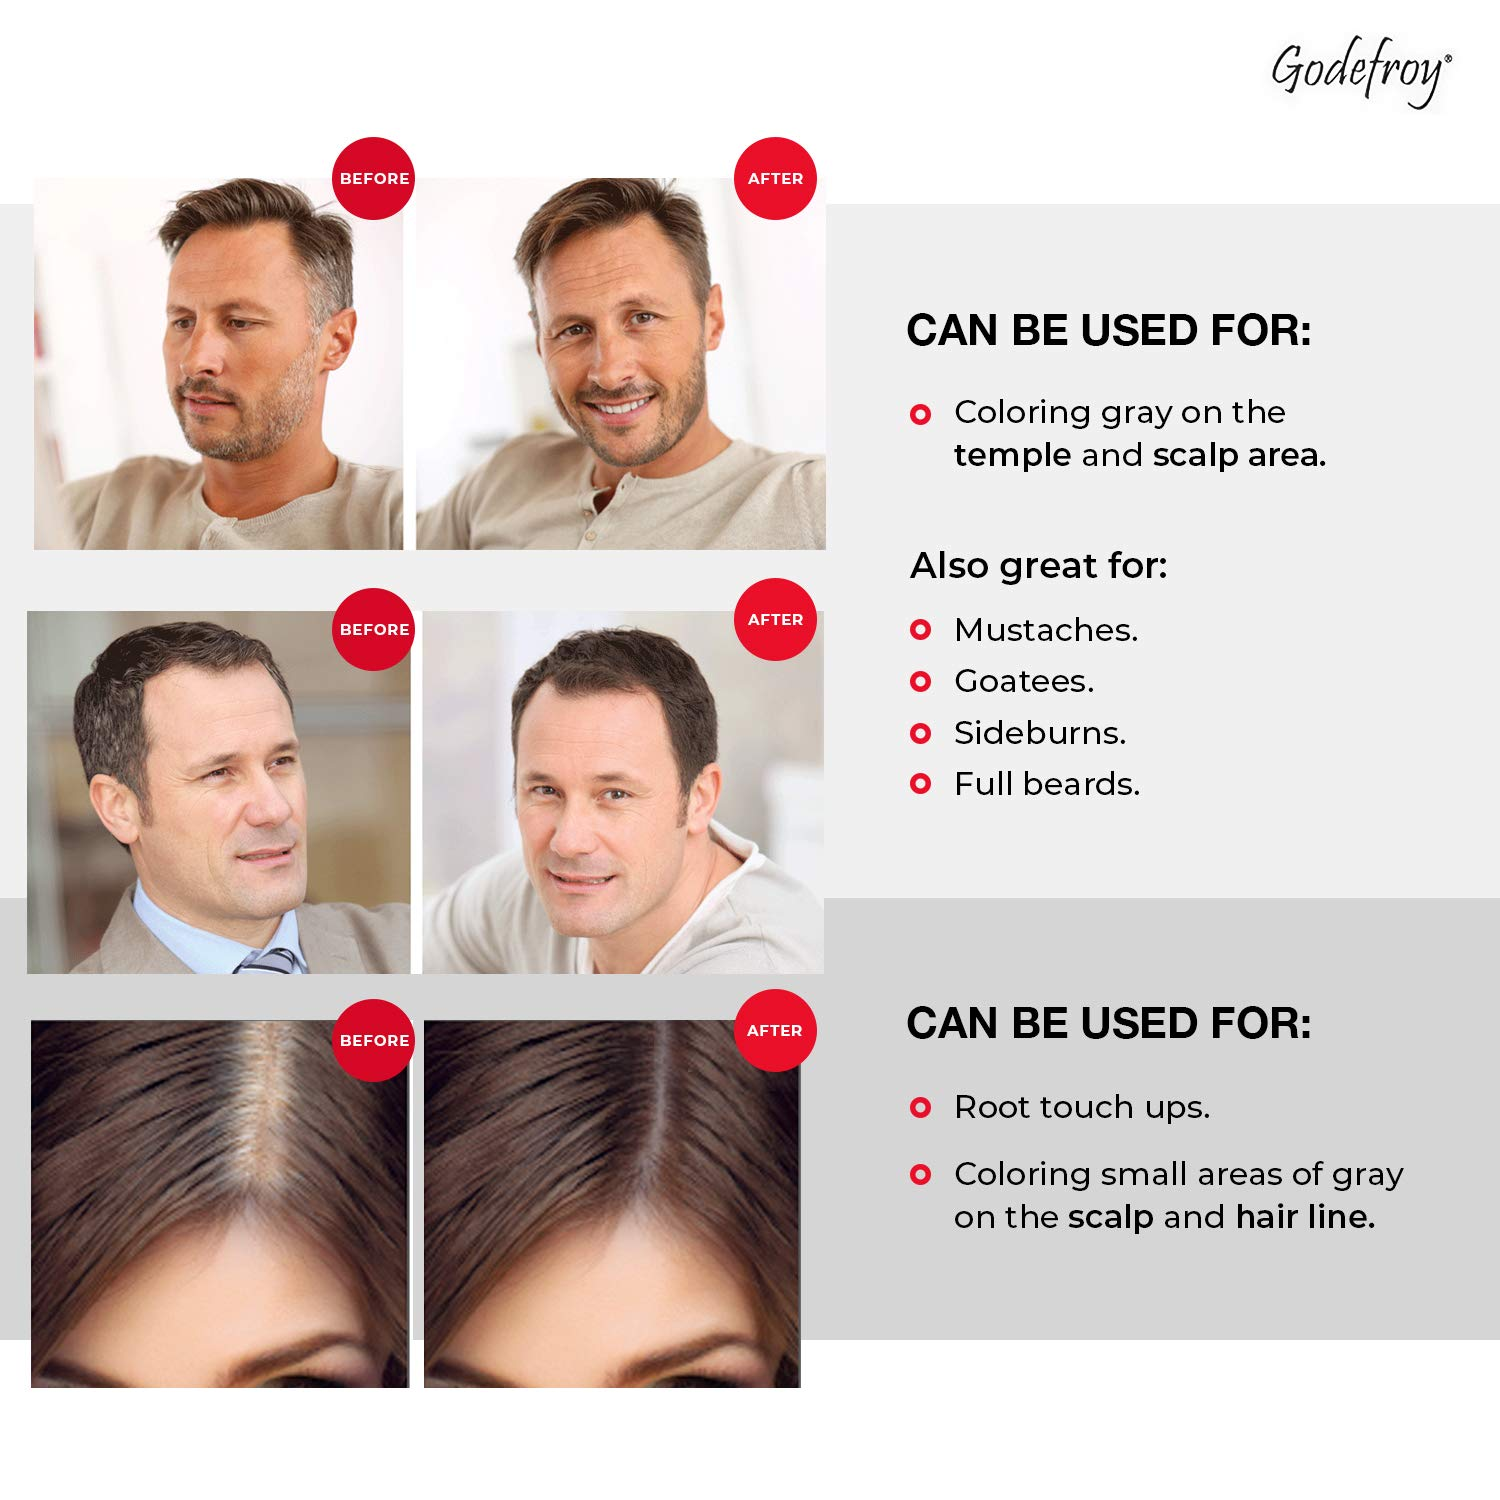 Godefroy Hair Color Kit for Spot Coloring, Covers Up Gray Hairs, Medium Brown, 4-Application Kit : Beauty